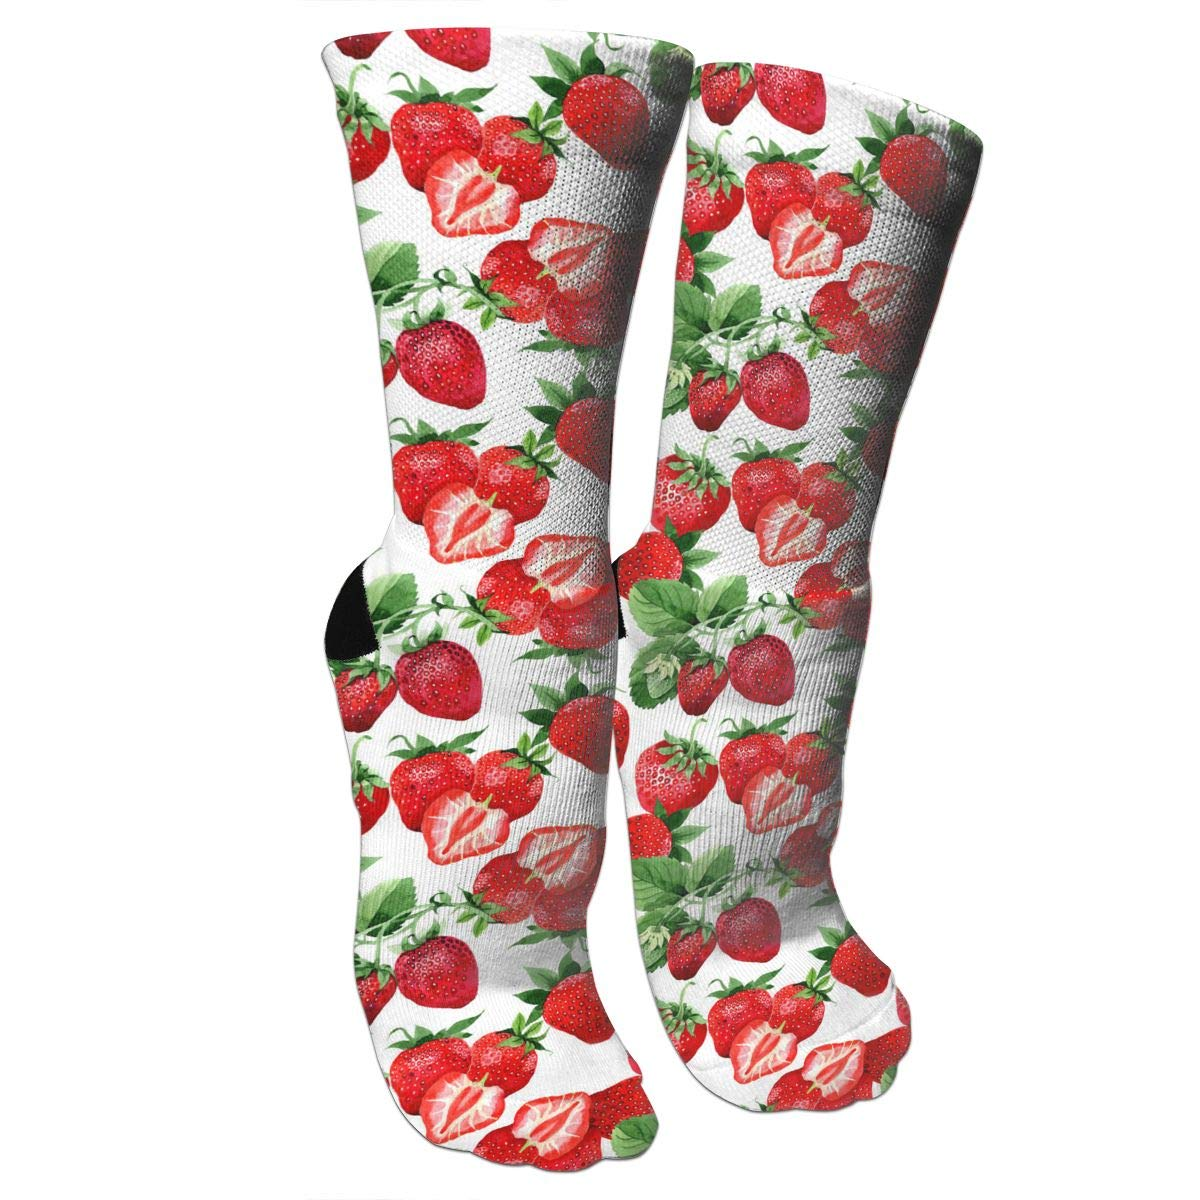 Watercolor Strawberry Pattern Crazy Socks Soft Breathable Casual Socks For Sports Athletic Running